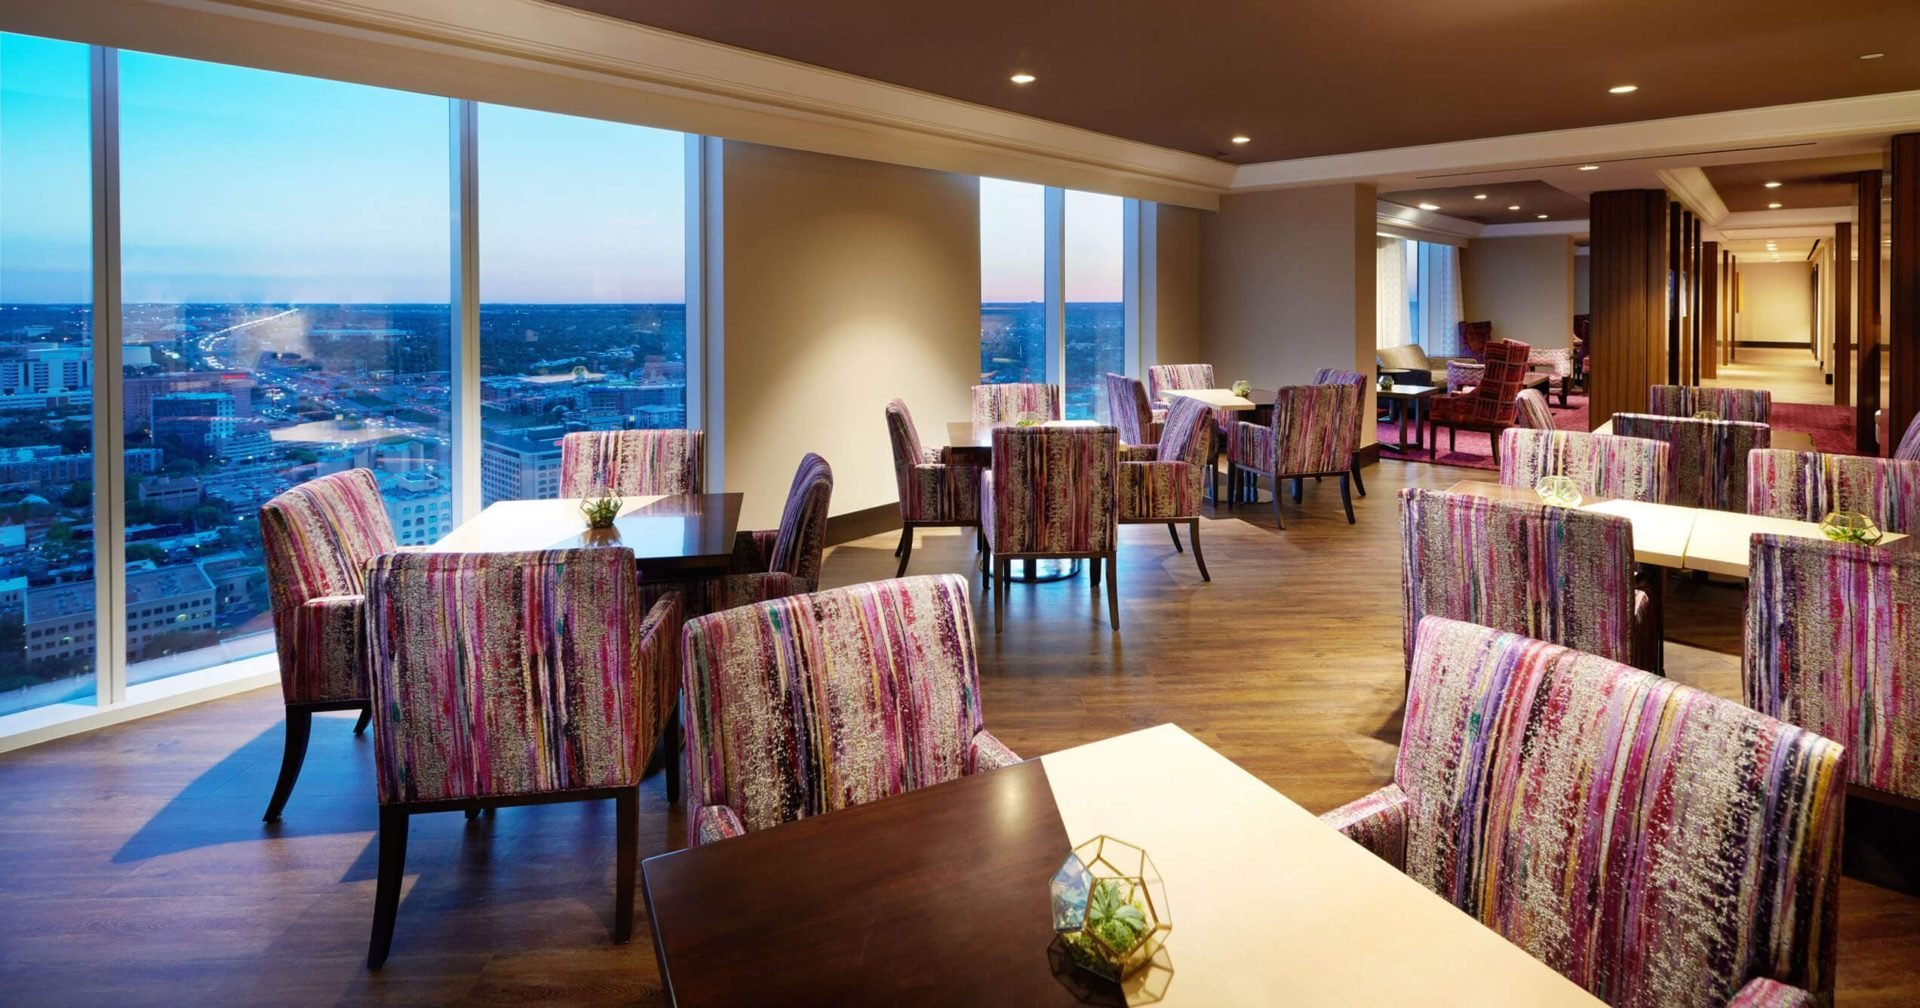 Lounge with Groups of 4 tables under recessed ceiling lights and window featuring amazing evening city view